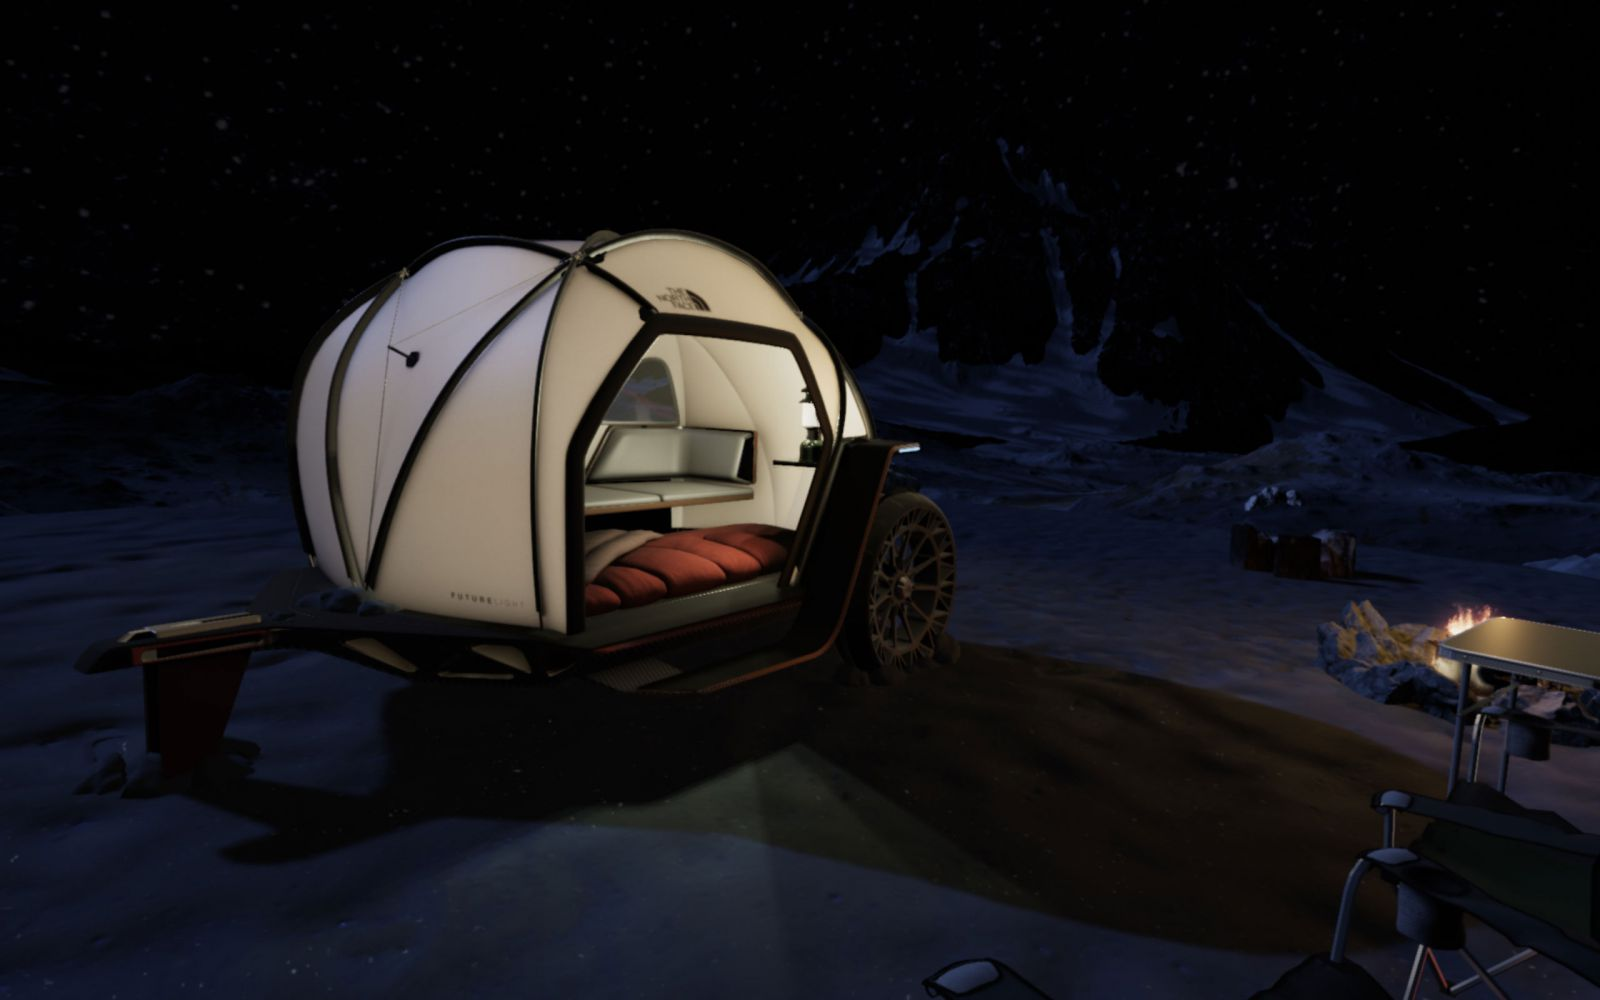 the north face camper by night